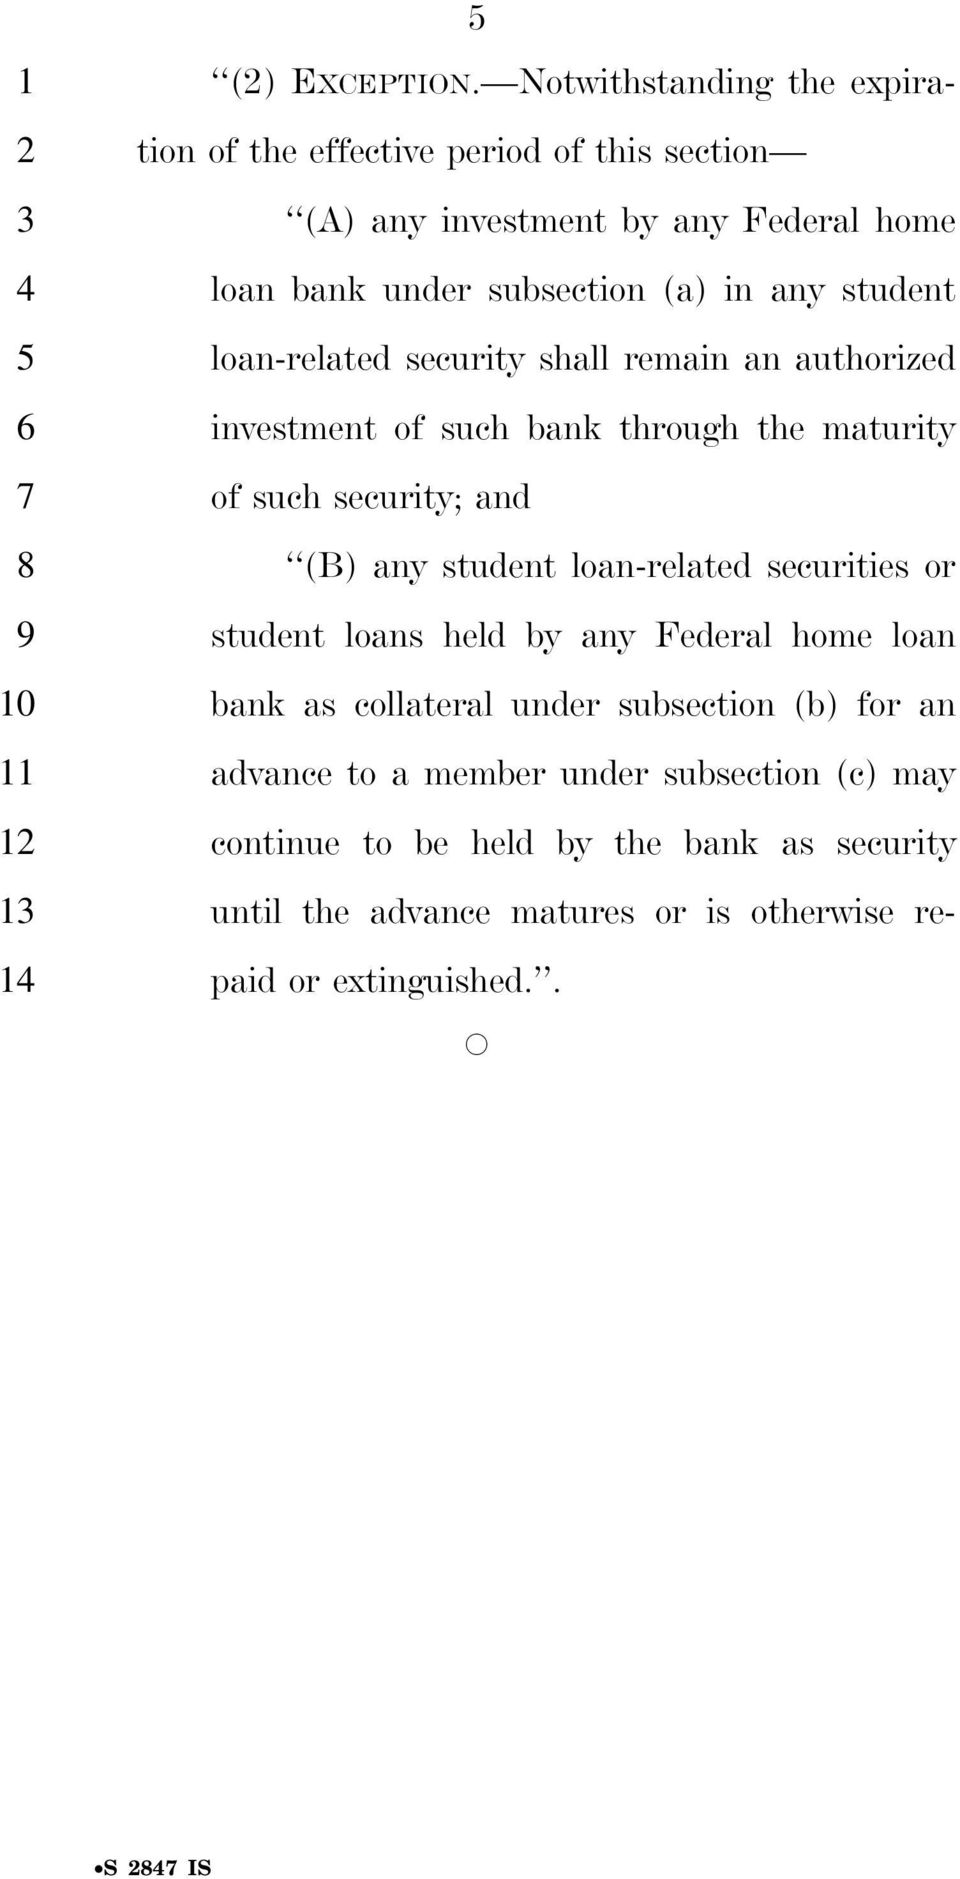 loan-related security shall remain an authorized investment of such bank through the maturity of such security; and (B) any student loan-related securities or student